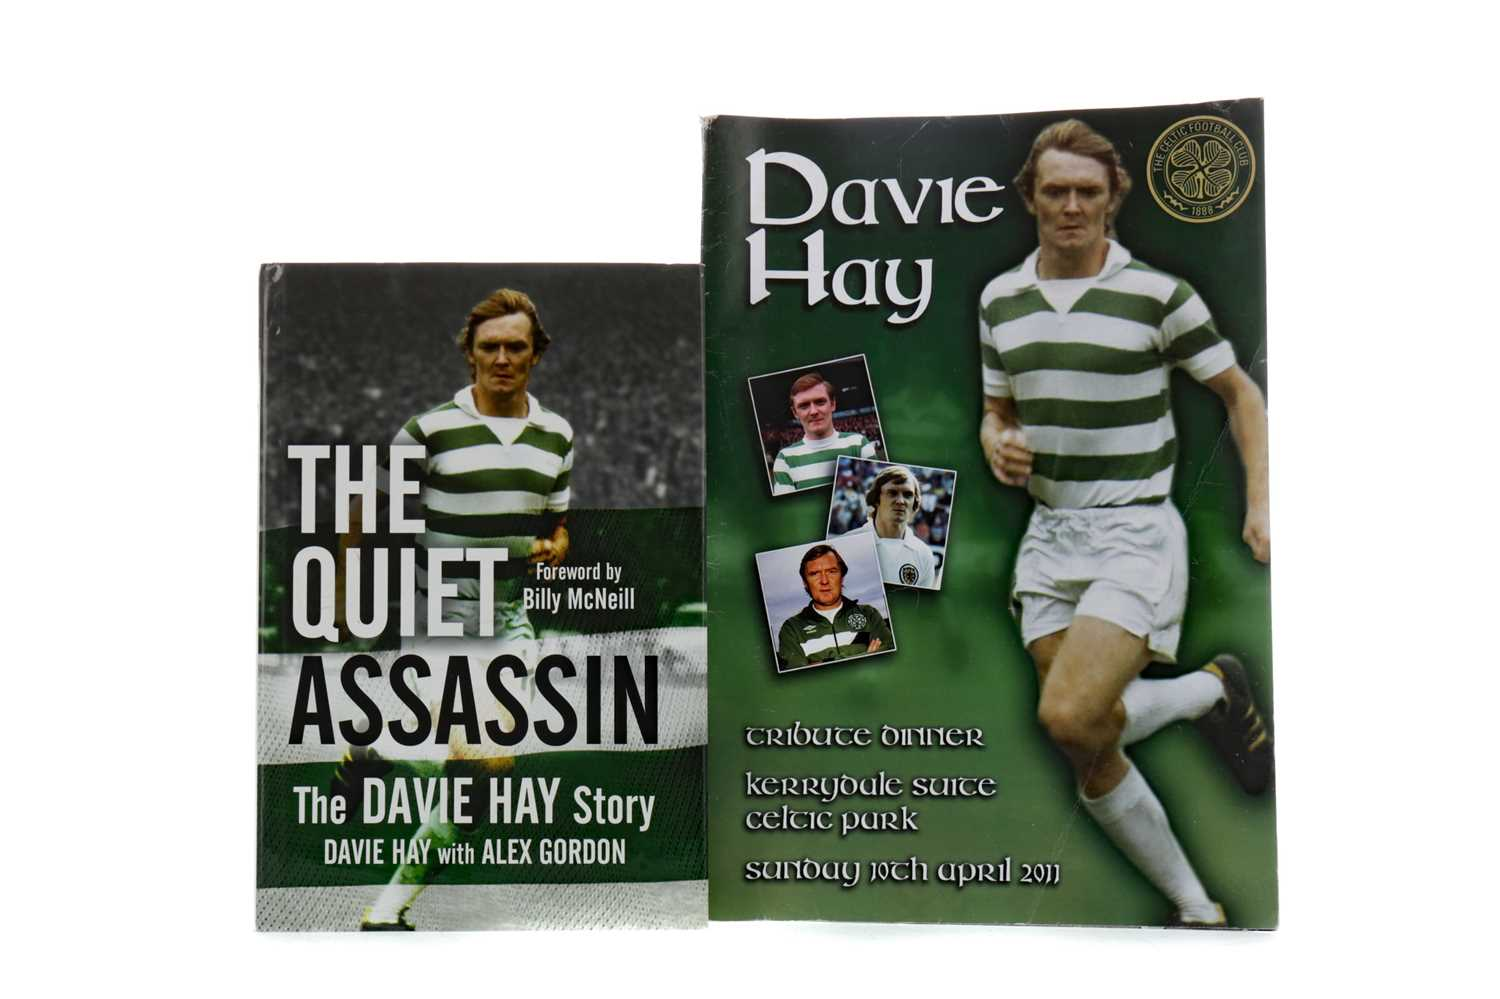 Lot 1750 - A SIGNED COPY OF THE QUIET ASSASSIN BY DAVIE HAY